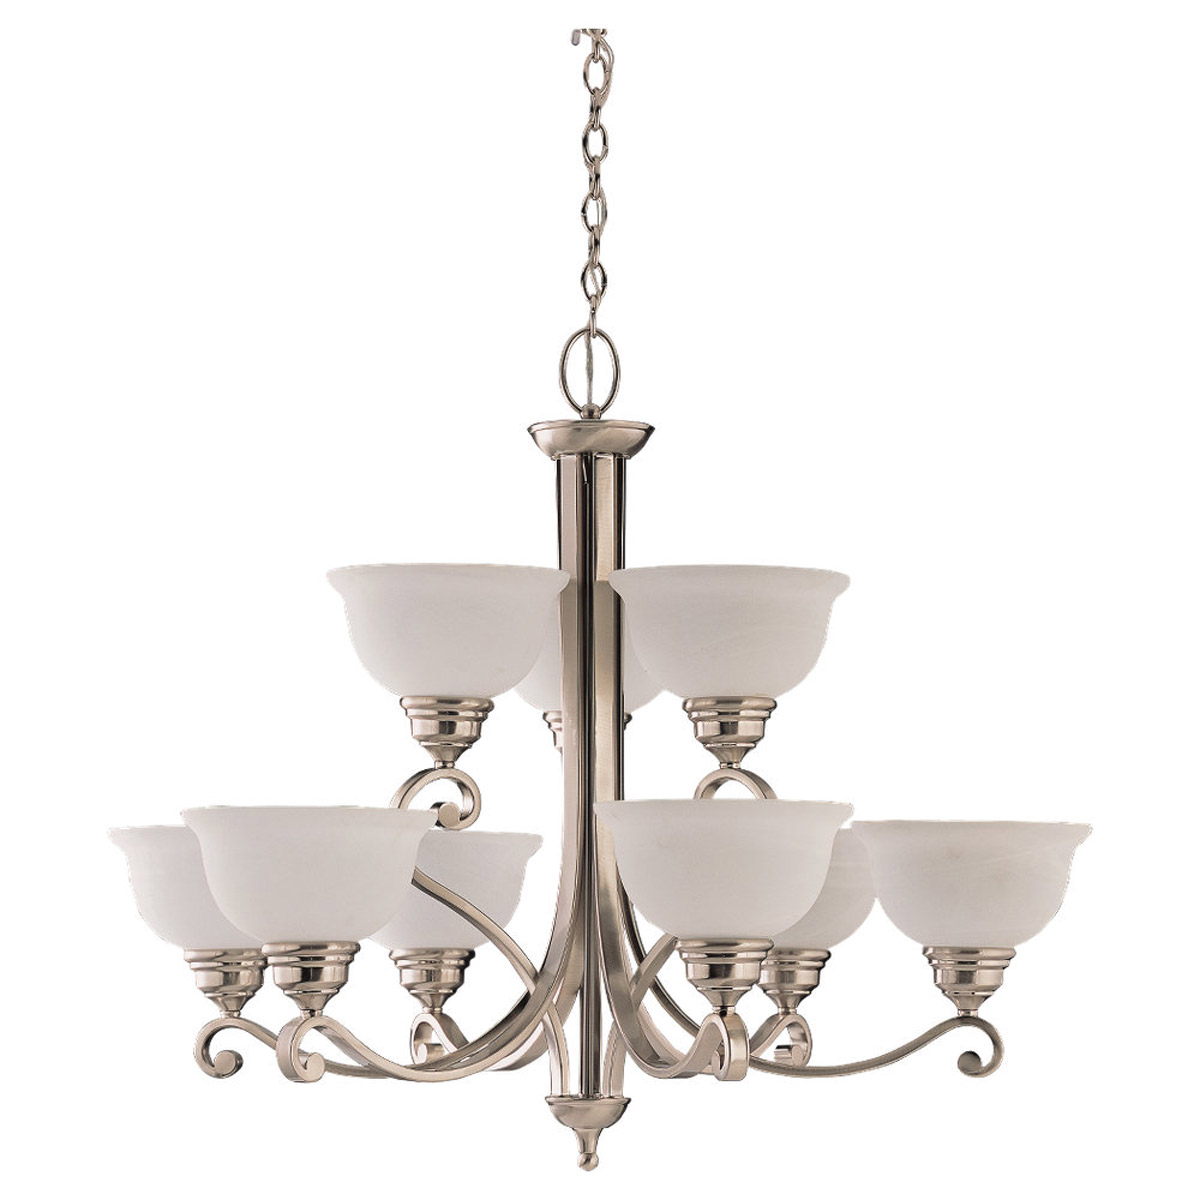 Sea Gull Lighting Serenity 9 Light Chandelier in Brushed Nickel 39060BLE-962 photo